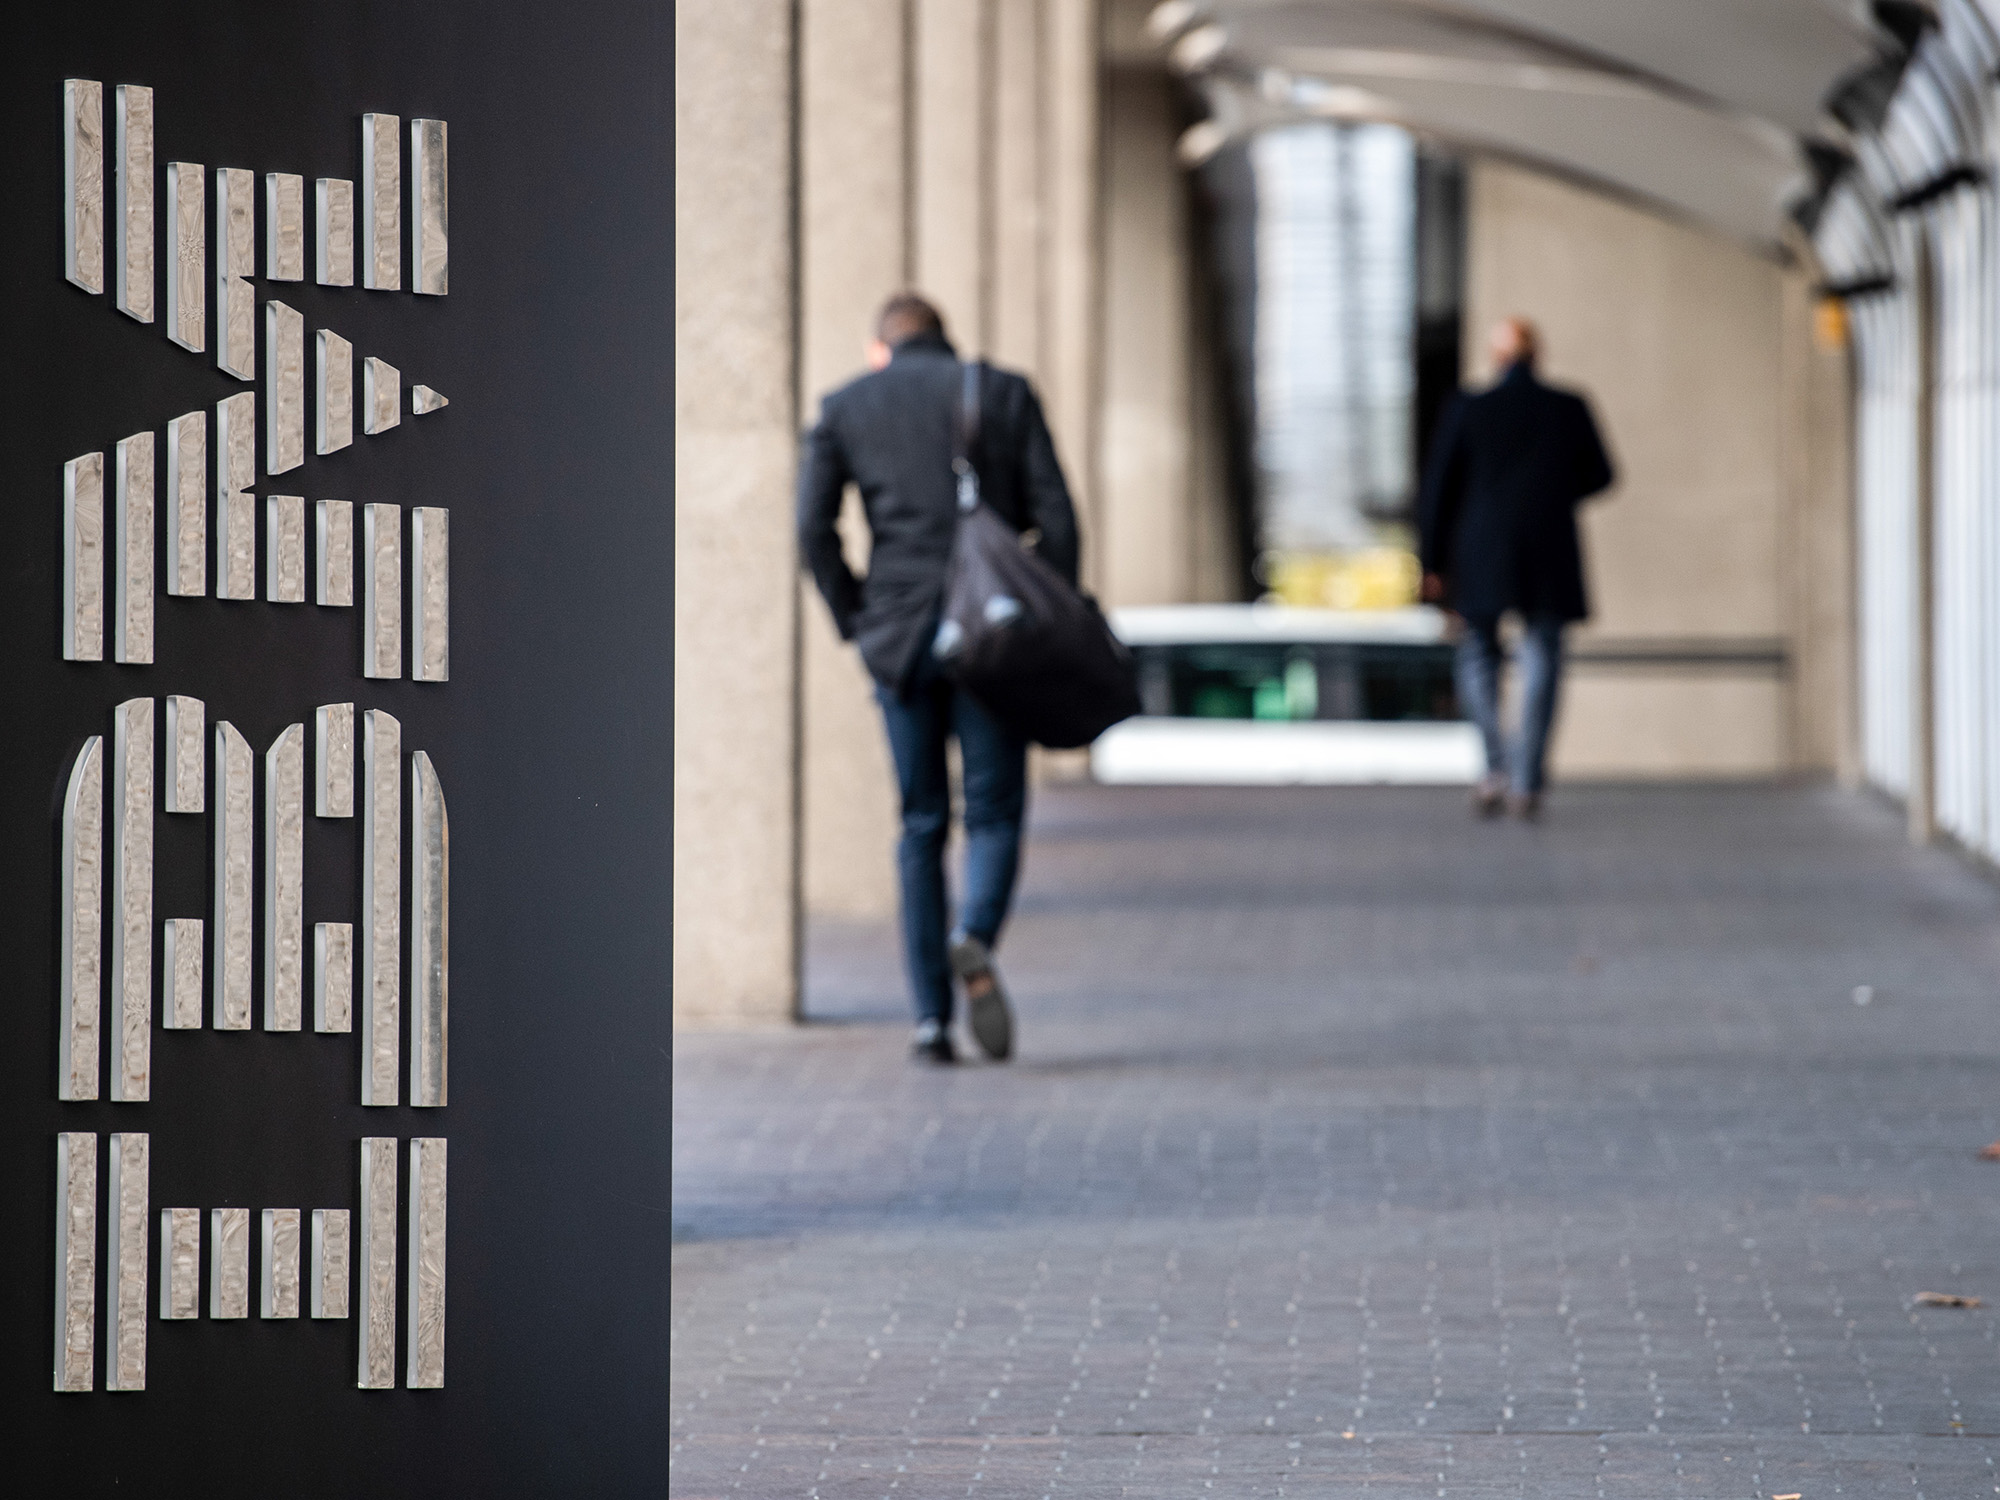 IBM Managers Discussed Ways to Thin Older Ranks, Documents